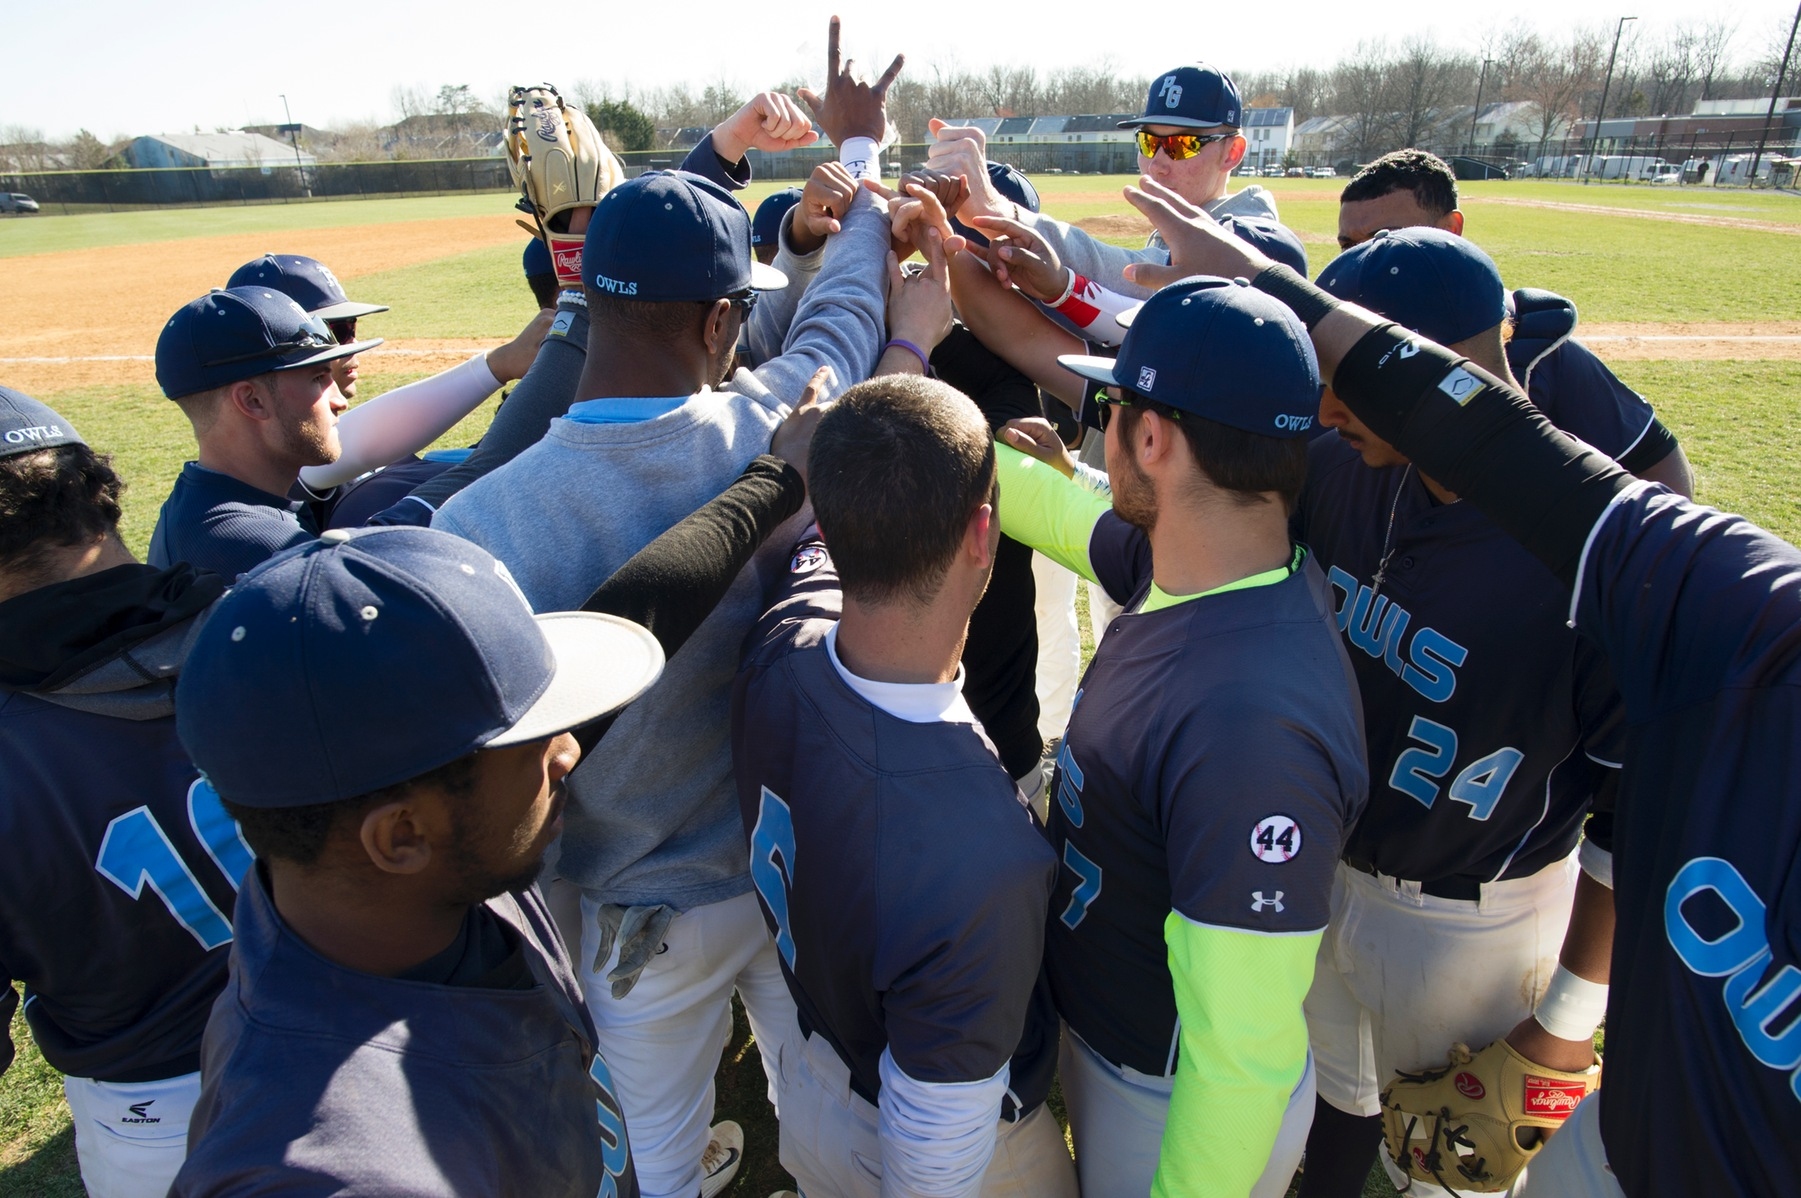 Eighth-Ranked Prince George's Baseball Drops Maryland JUCO Game At CCBC Catonsville